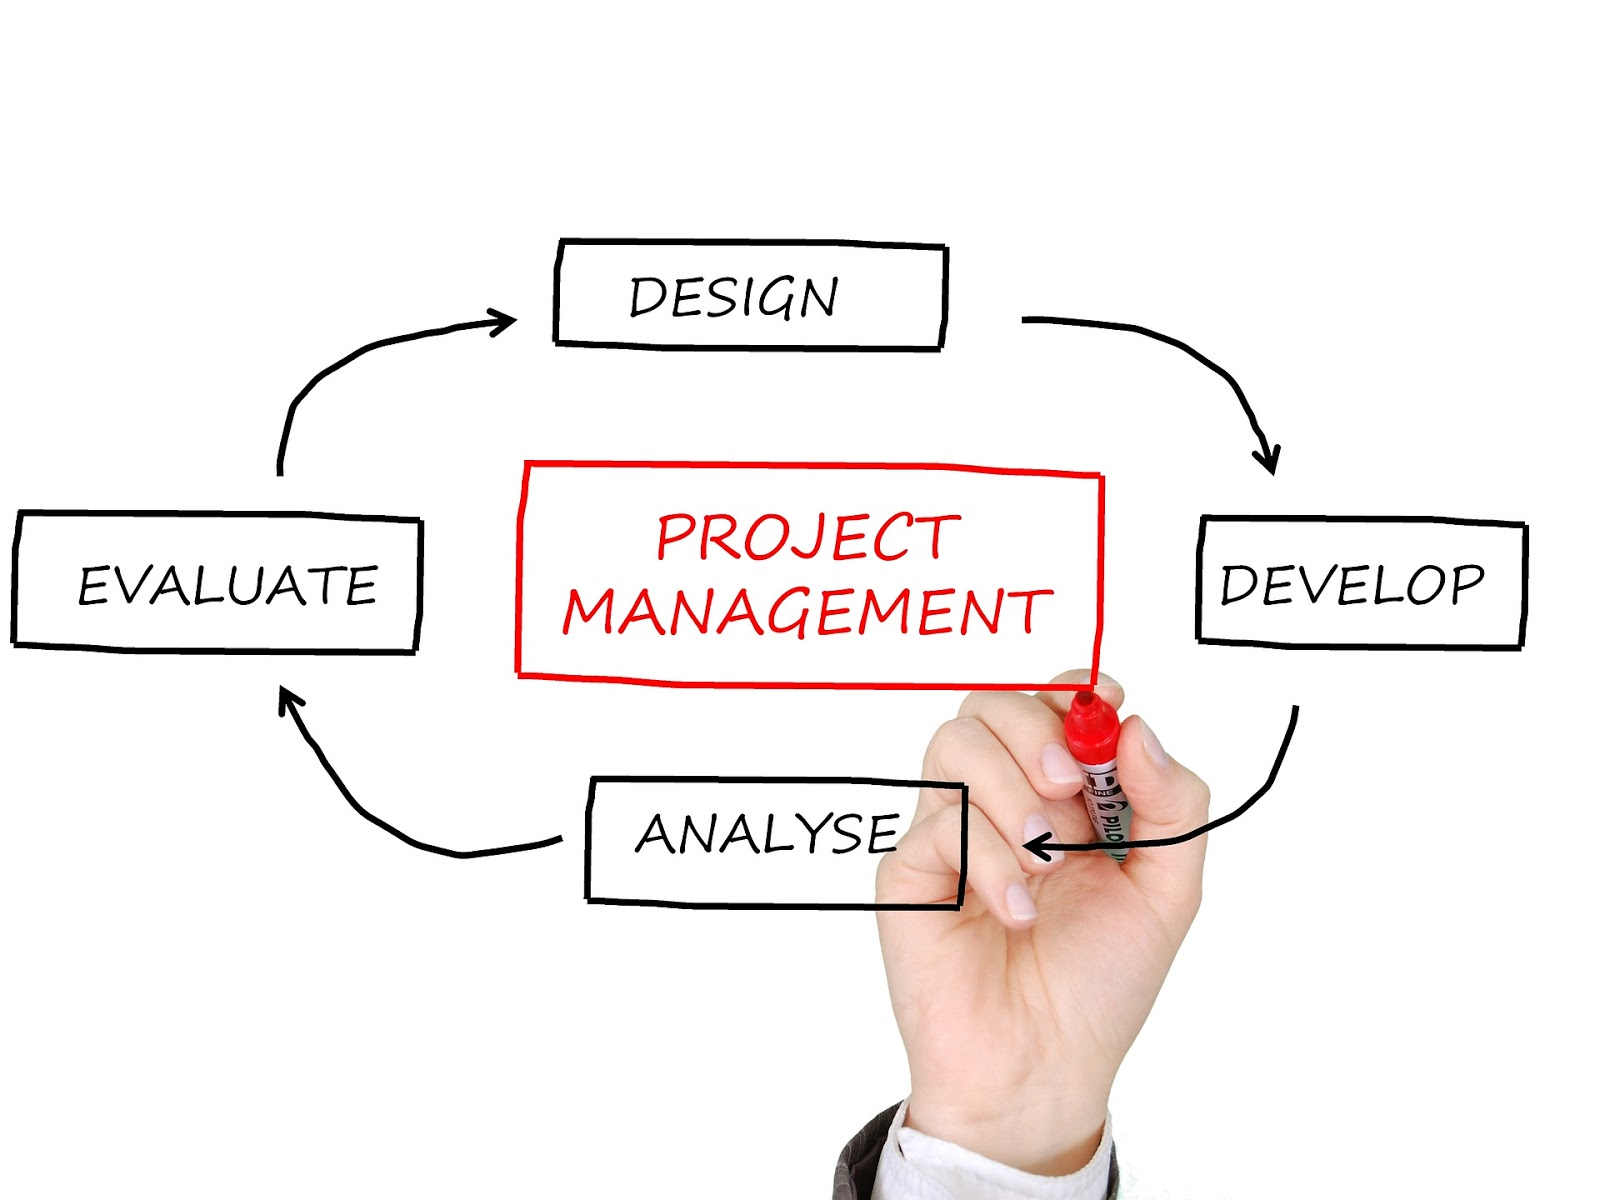 The benefits of agile project management apply to software and non-software pursuits